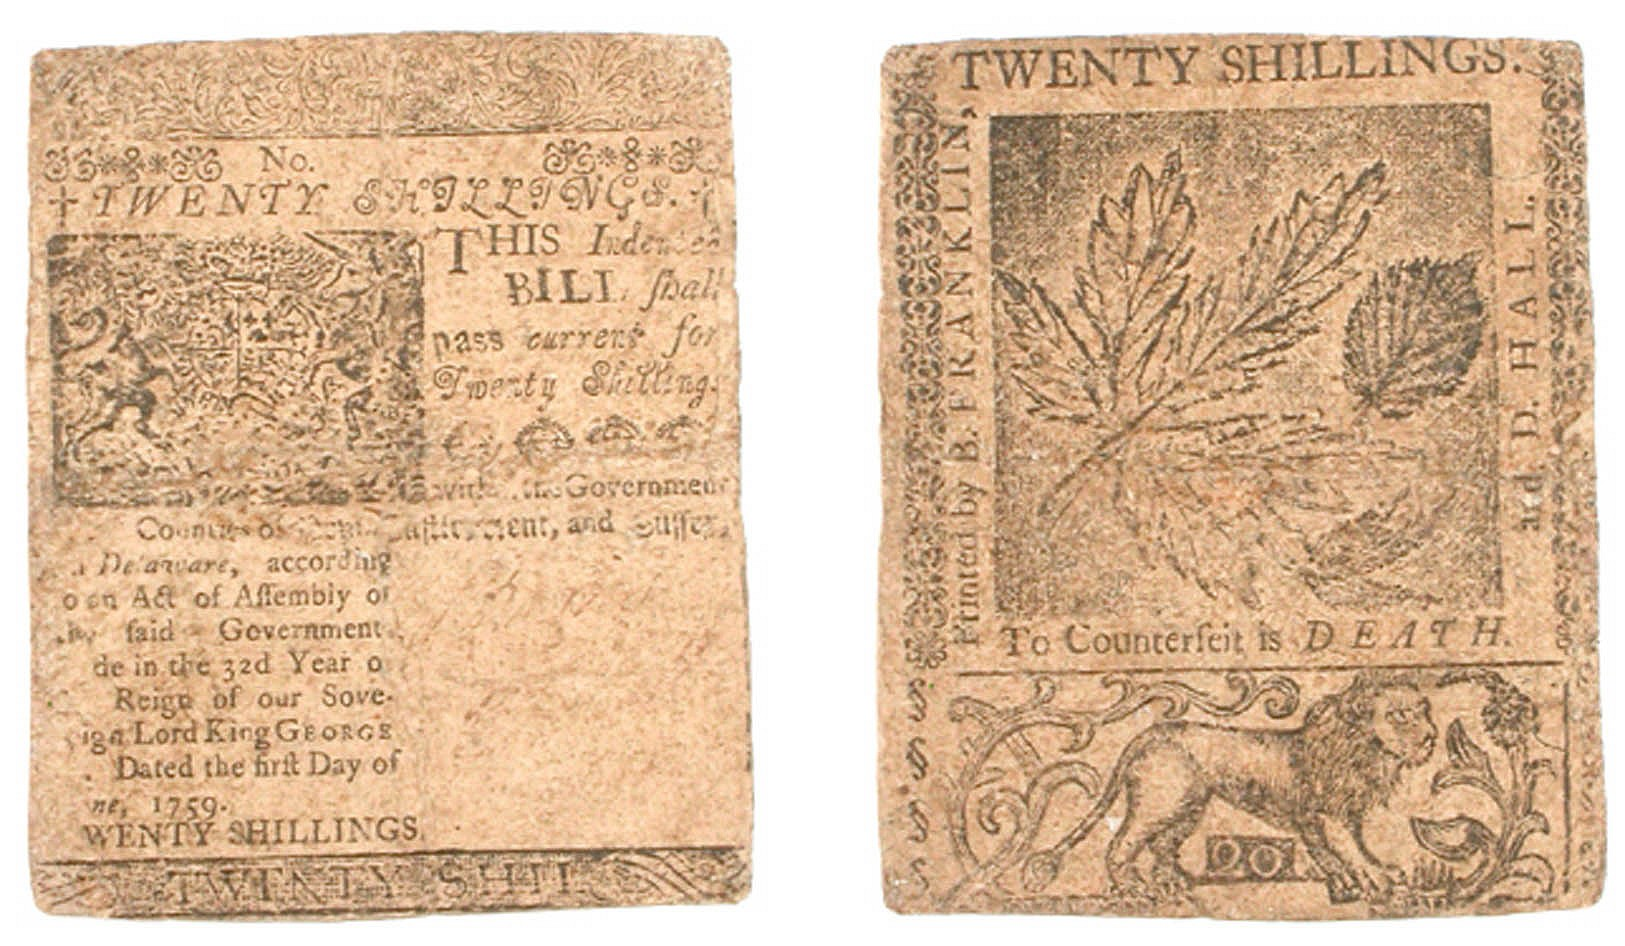 2cc0fb4d60229f American Currency, Twenty Shillings nature printed note printed by B.  Franklin and Hall in